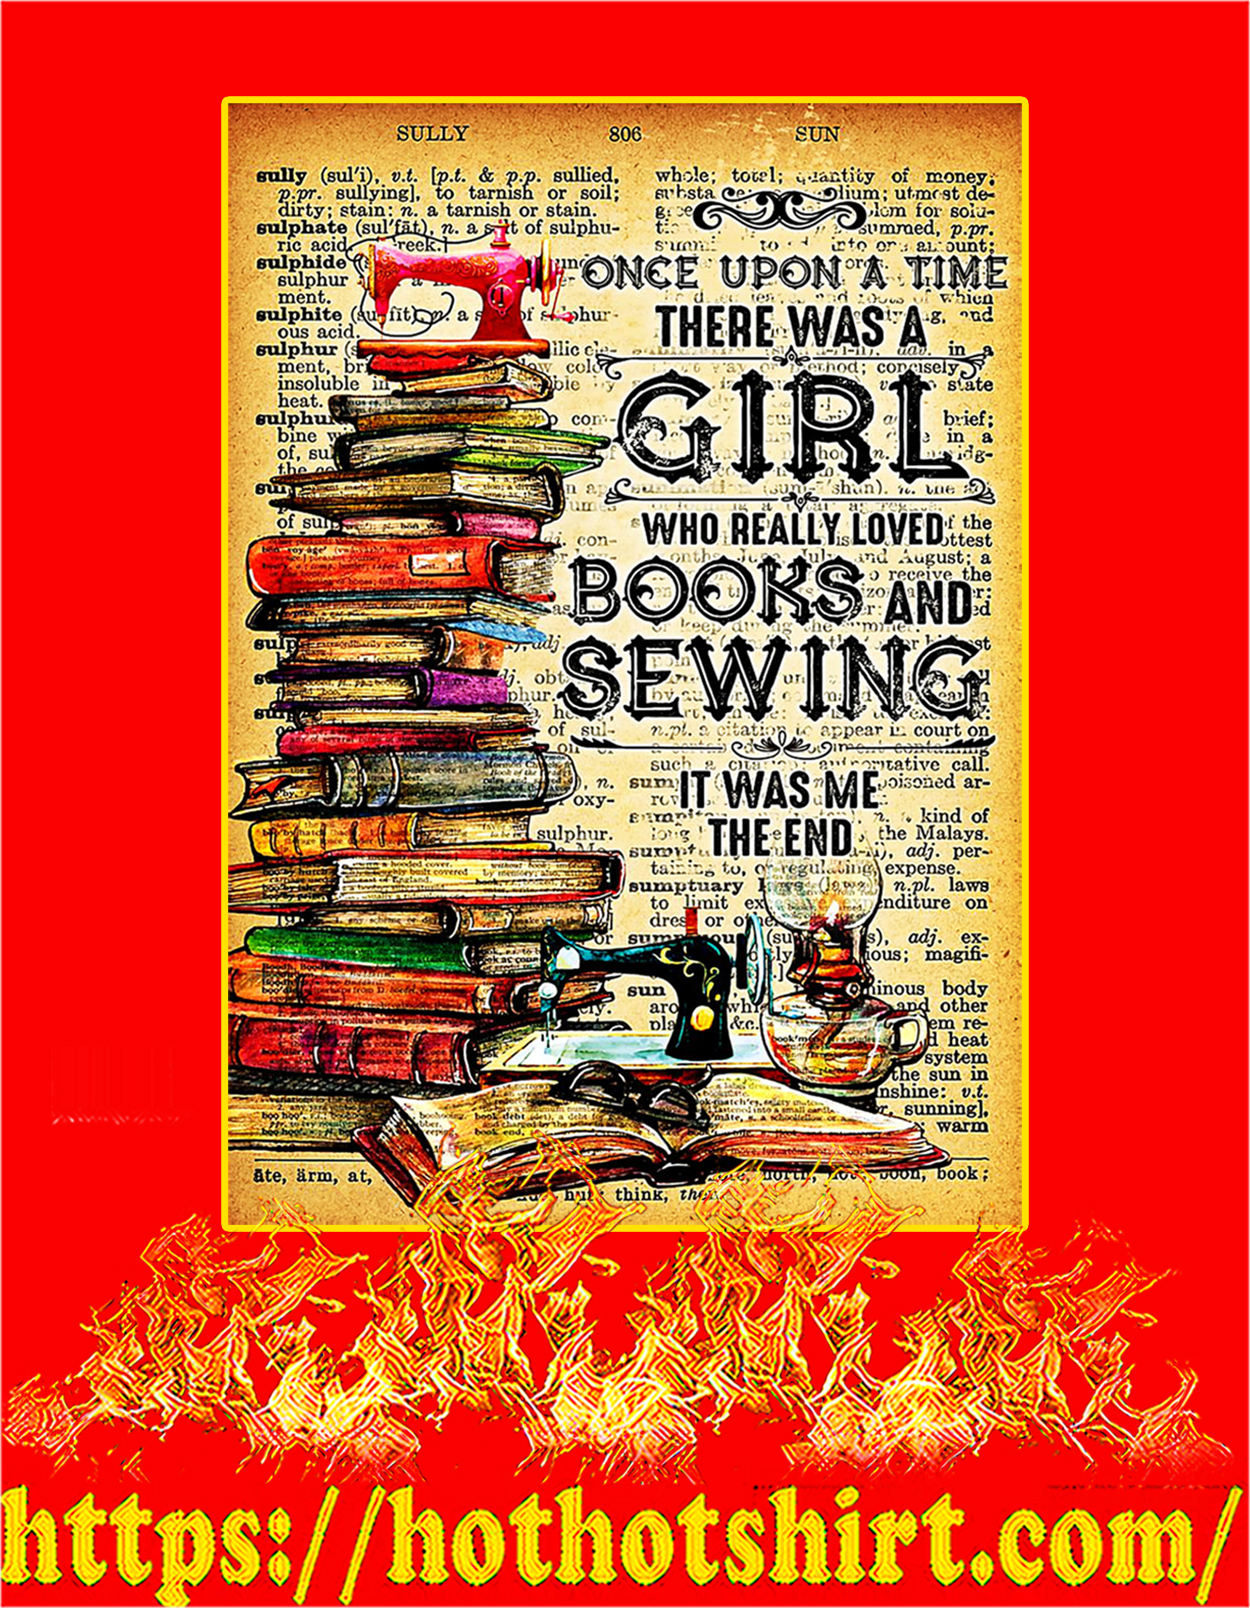 There was a Girl who really loved books and sewing poster - A3